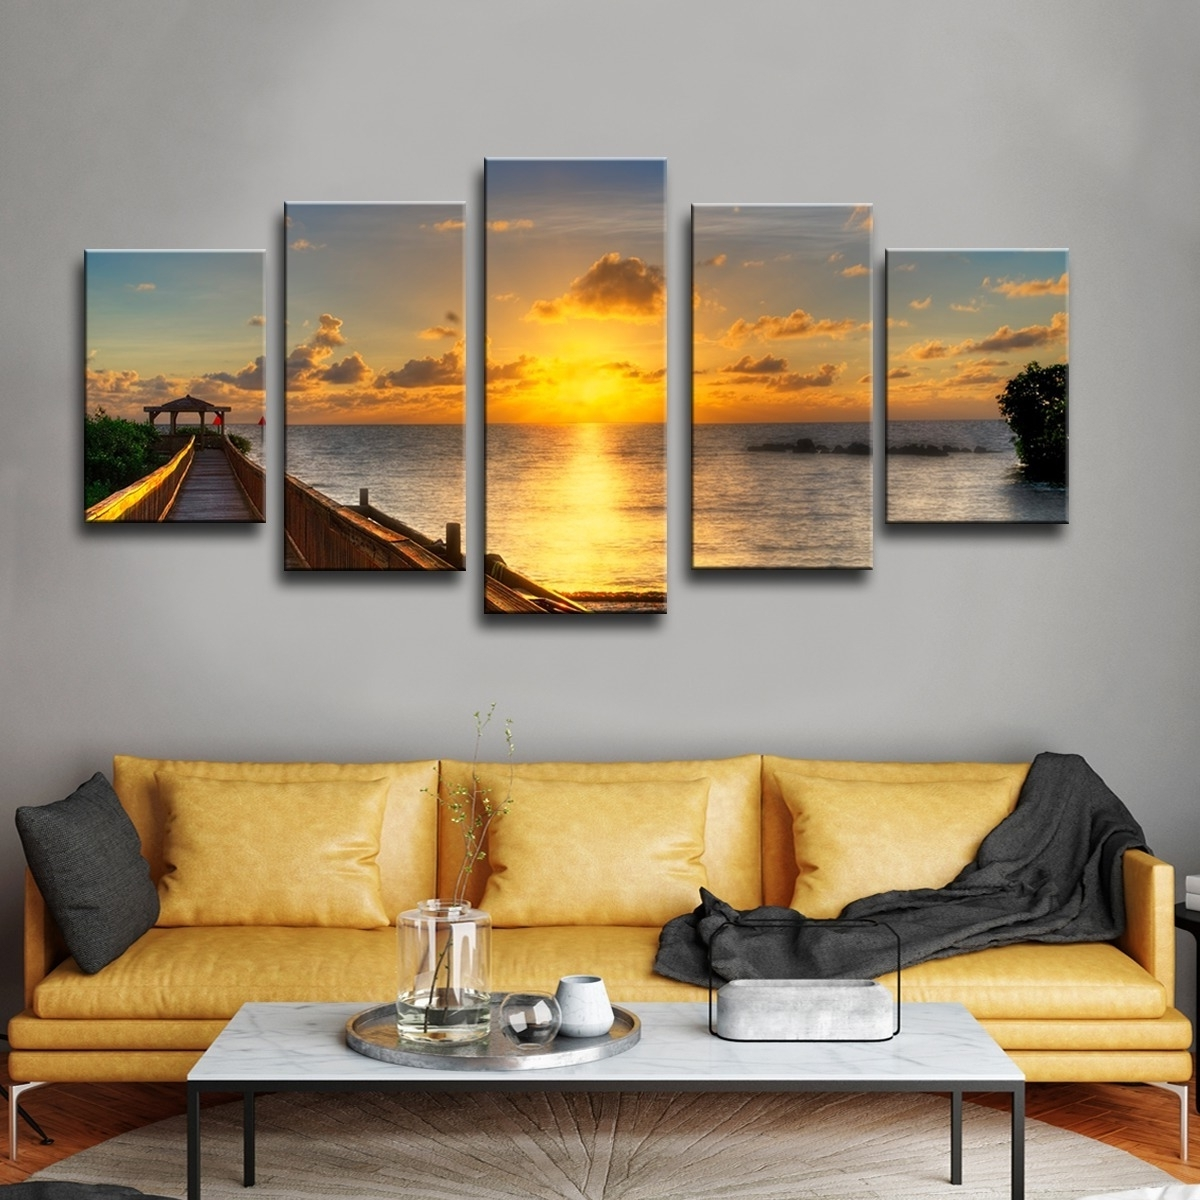 Widely Used Overstock Wall Art Within Shop Havenside Home Key's Sunrise' 5 Piece Set Canvas Wall Art (View 15 of 15)